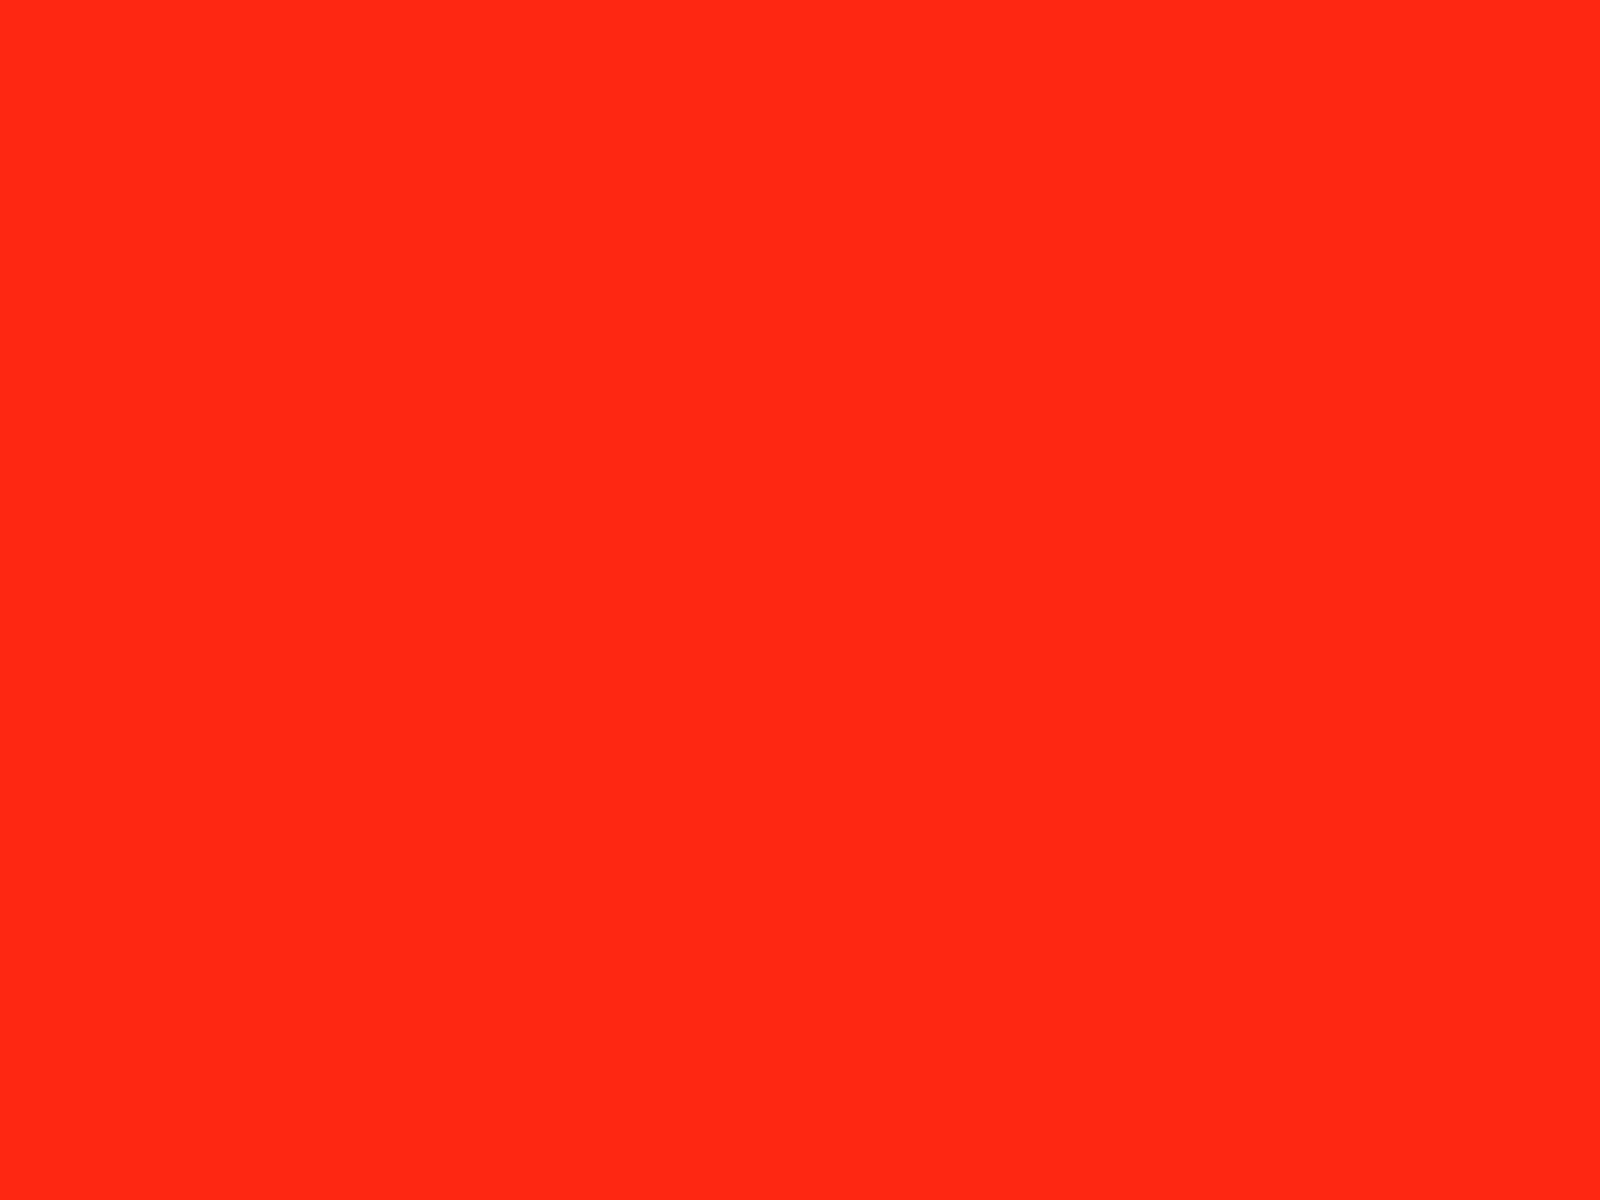 1600x1200 Red RYB Solid Color Background